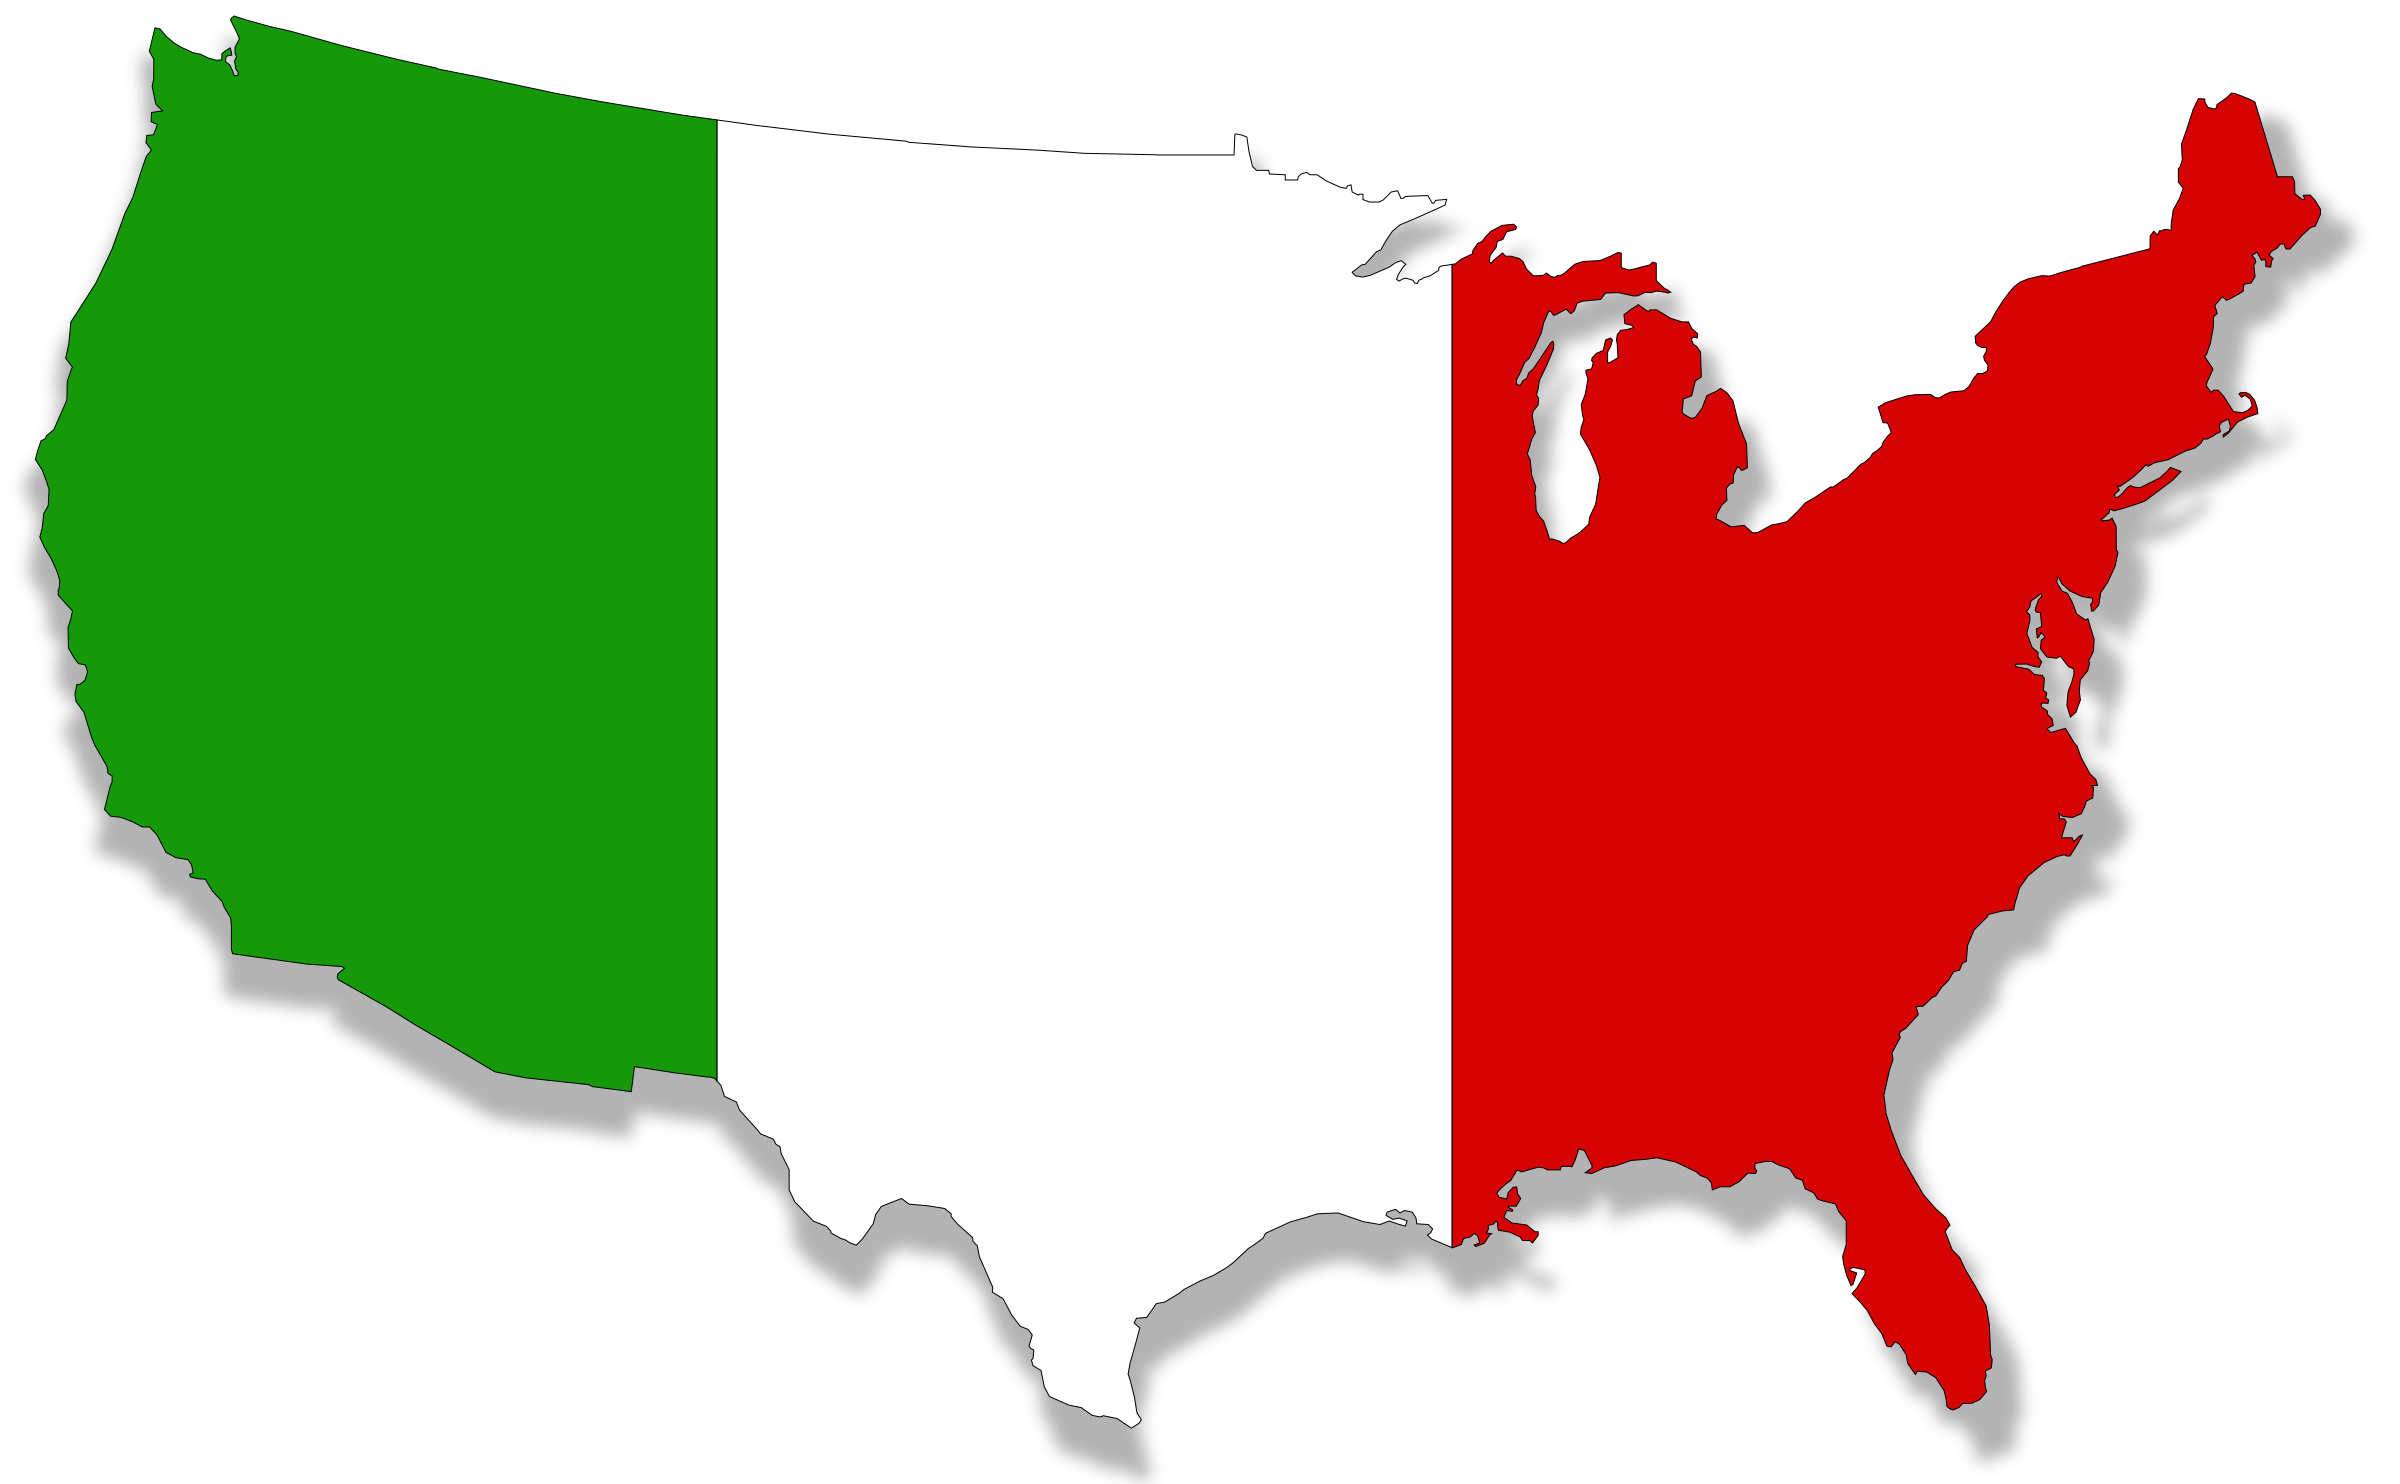 Clipart map map united states. Silhouette clip art italy